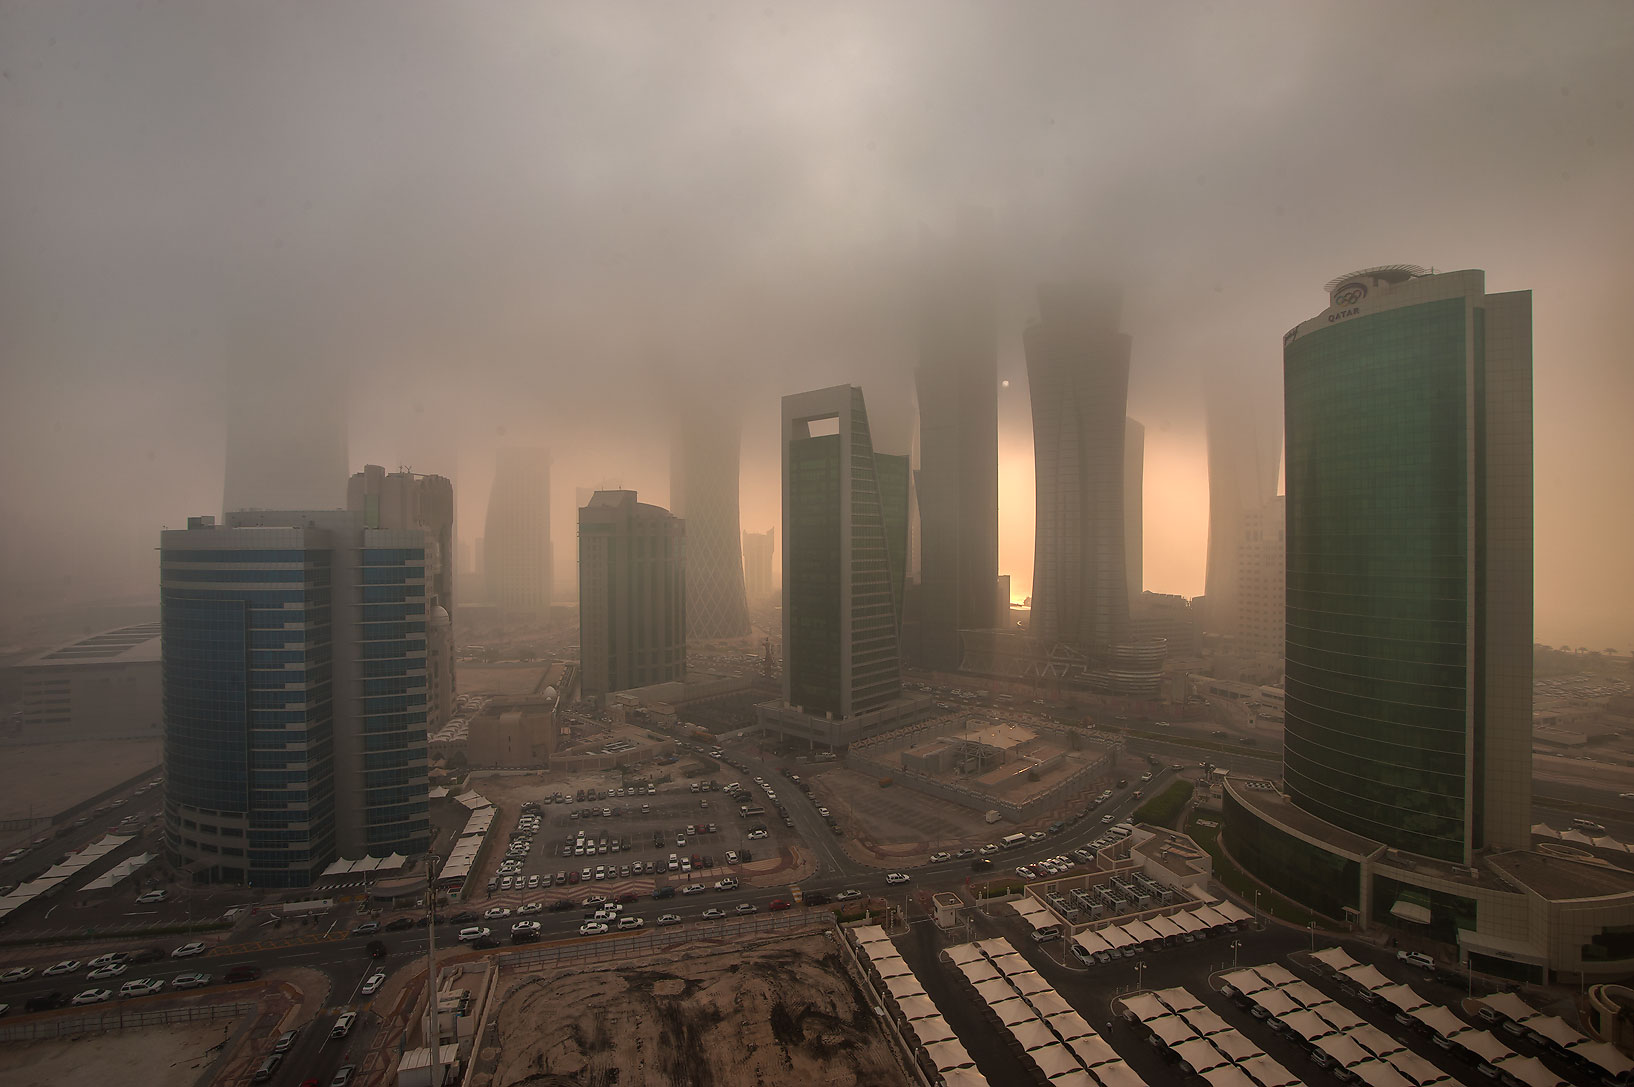 Area of West Bay from Room 1604 of Dareen Tower in fog. Doha, Qatar